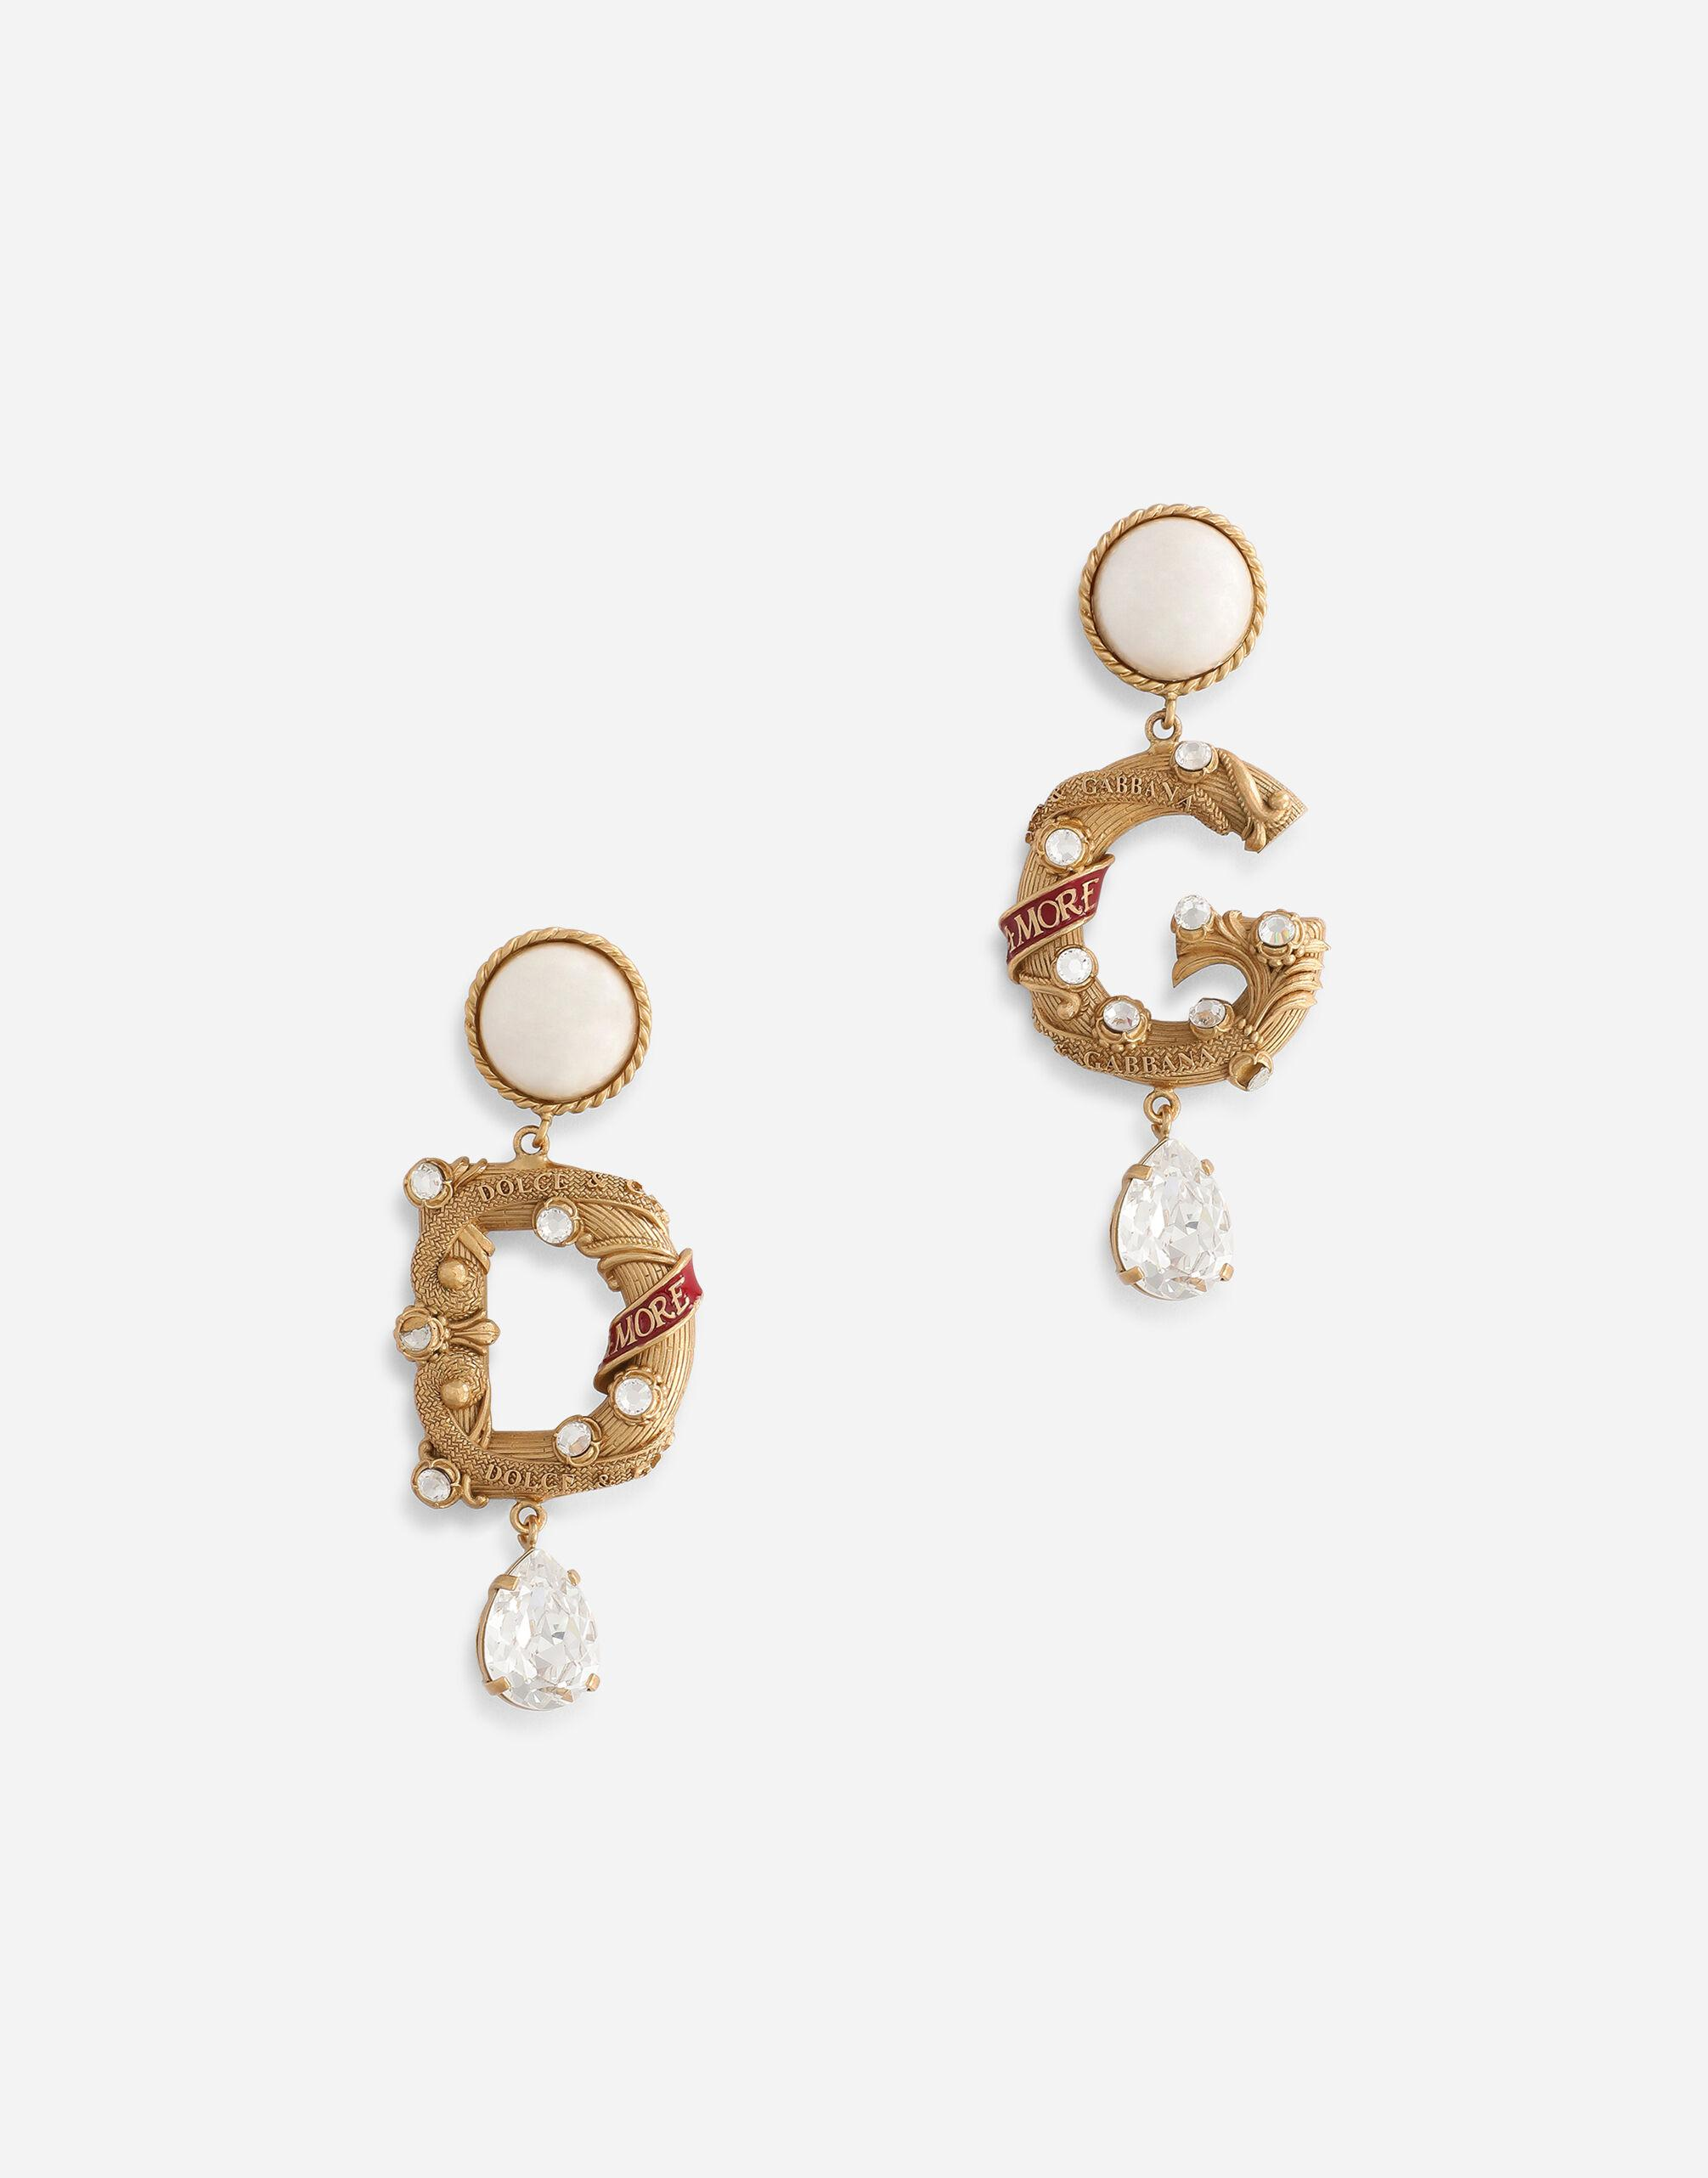 Hook earrings with rhinestone decorative elements and DG logo